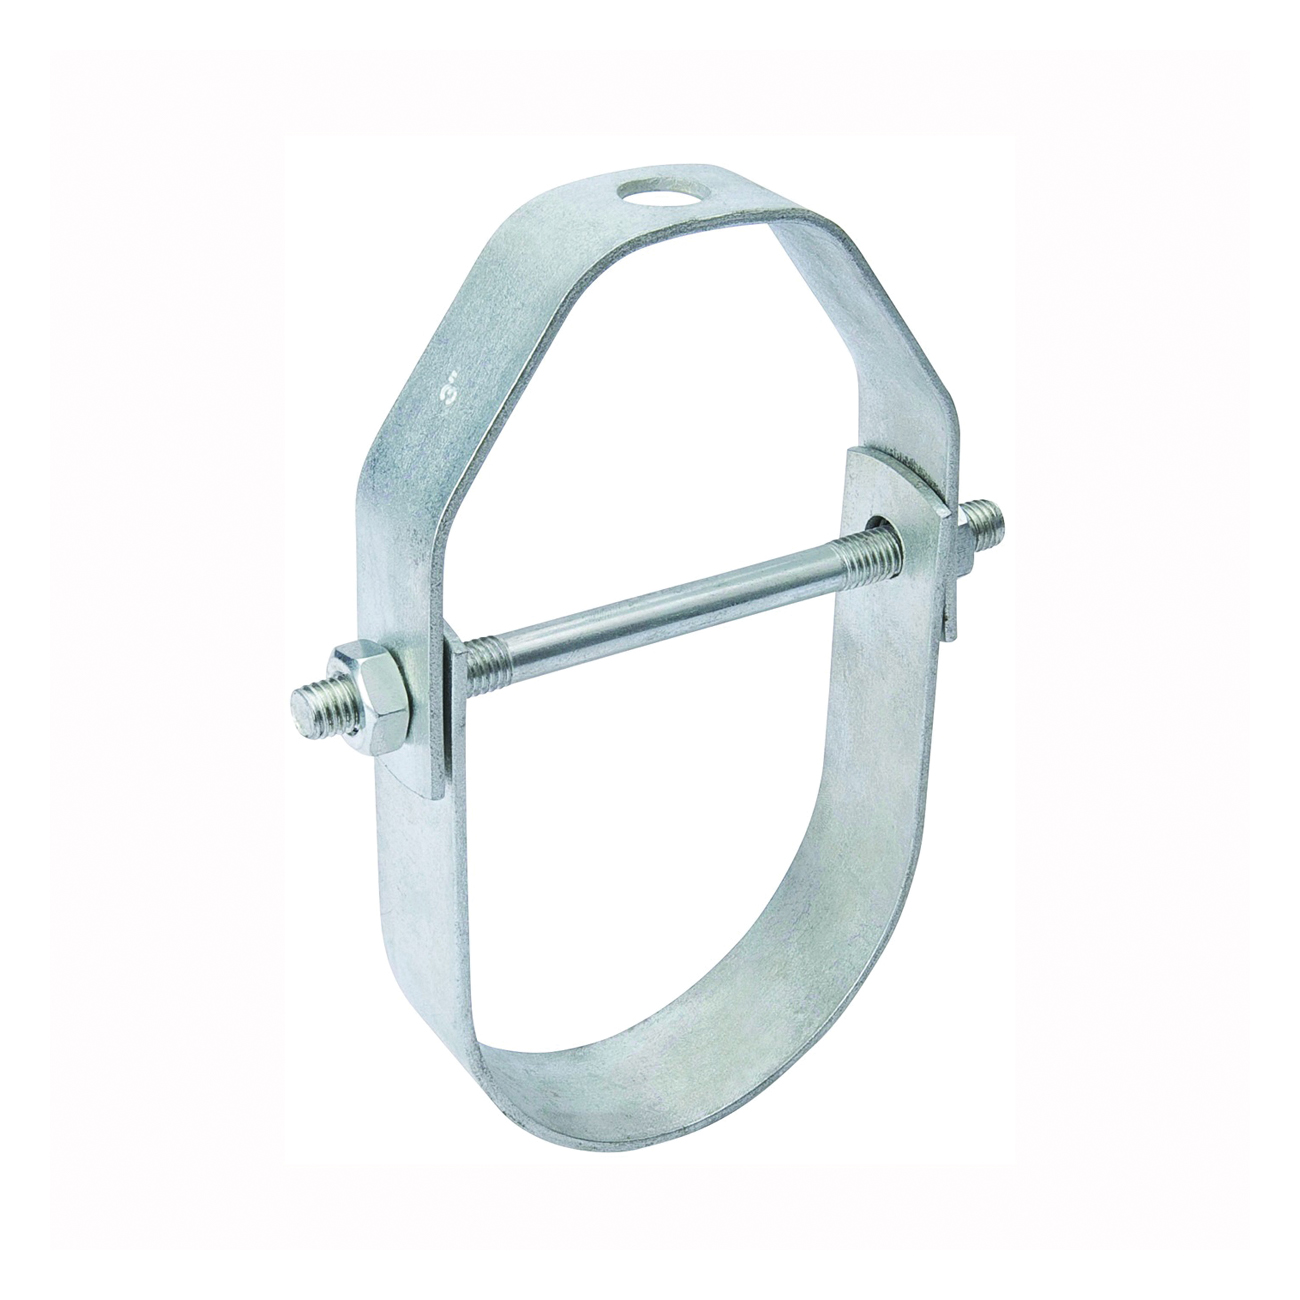 Picture of B & K G65-100HC Pipe Hanger, 1 in Opening, Galvanized Steel, 20